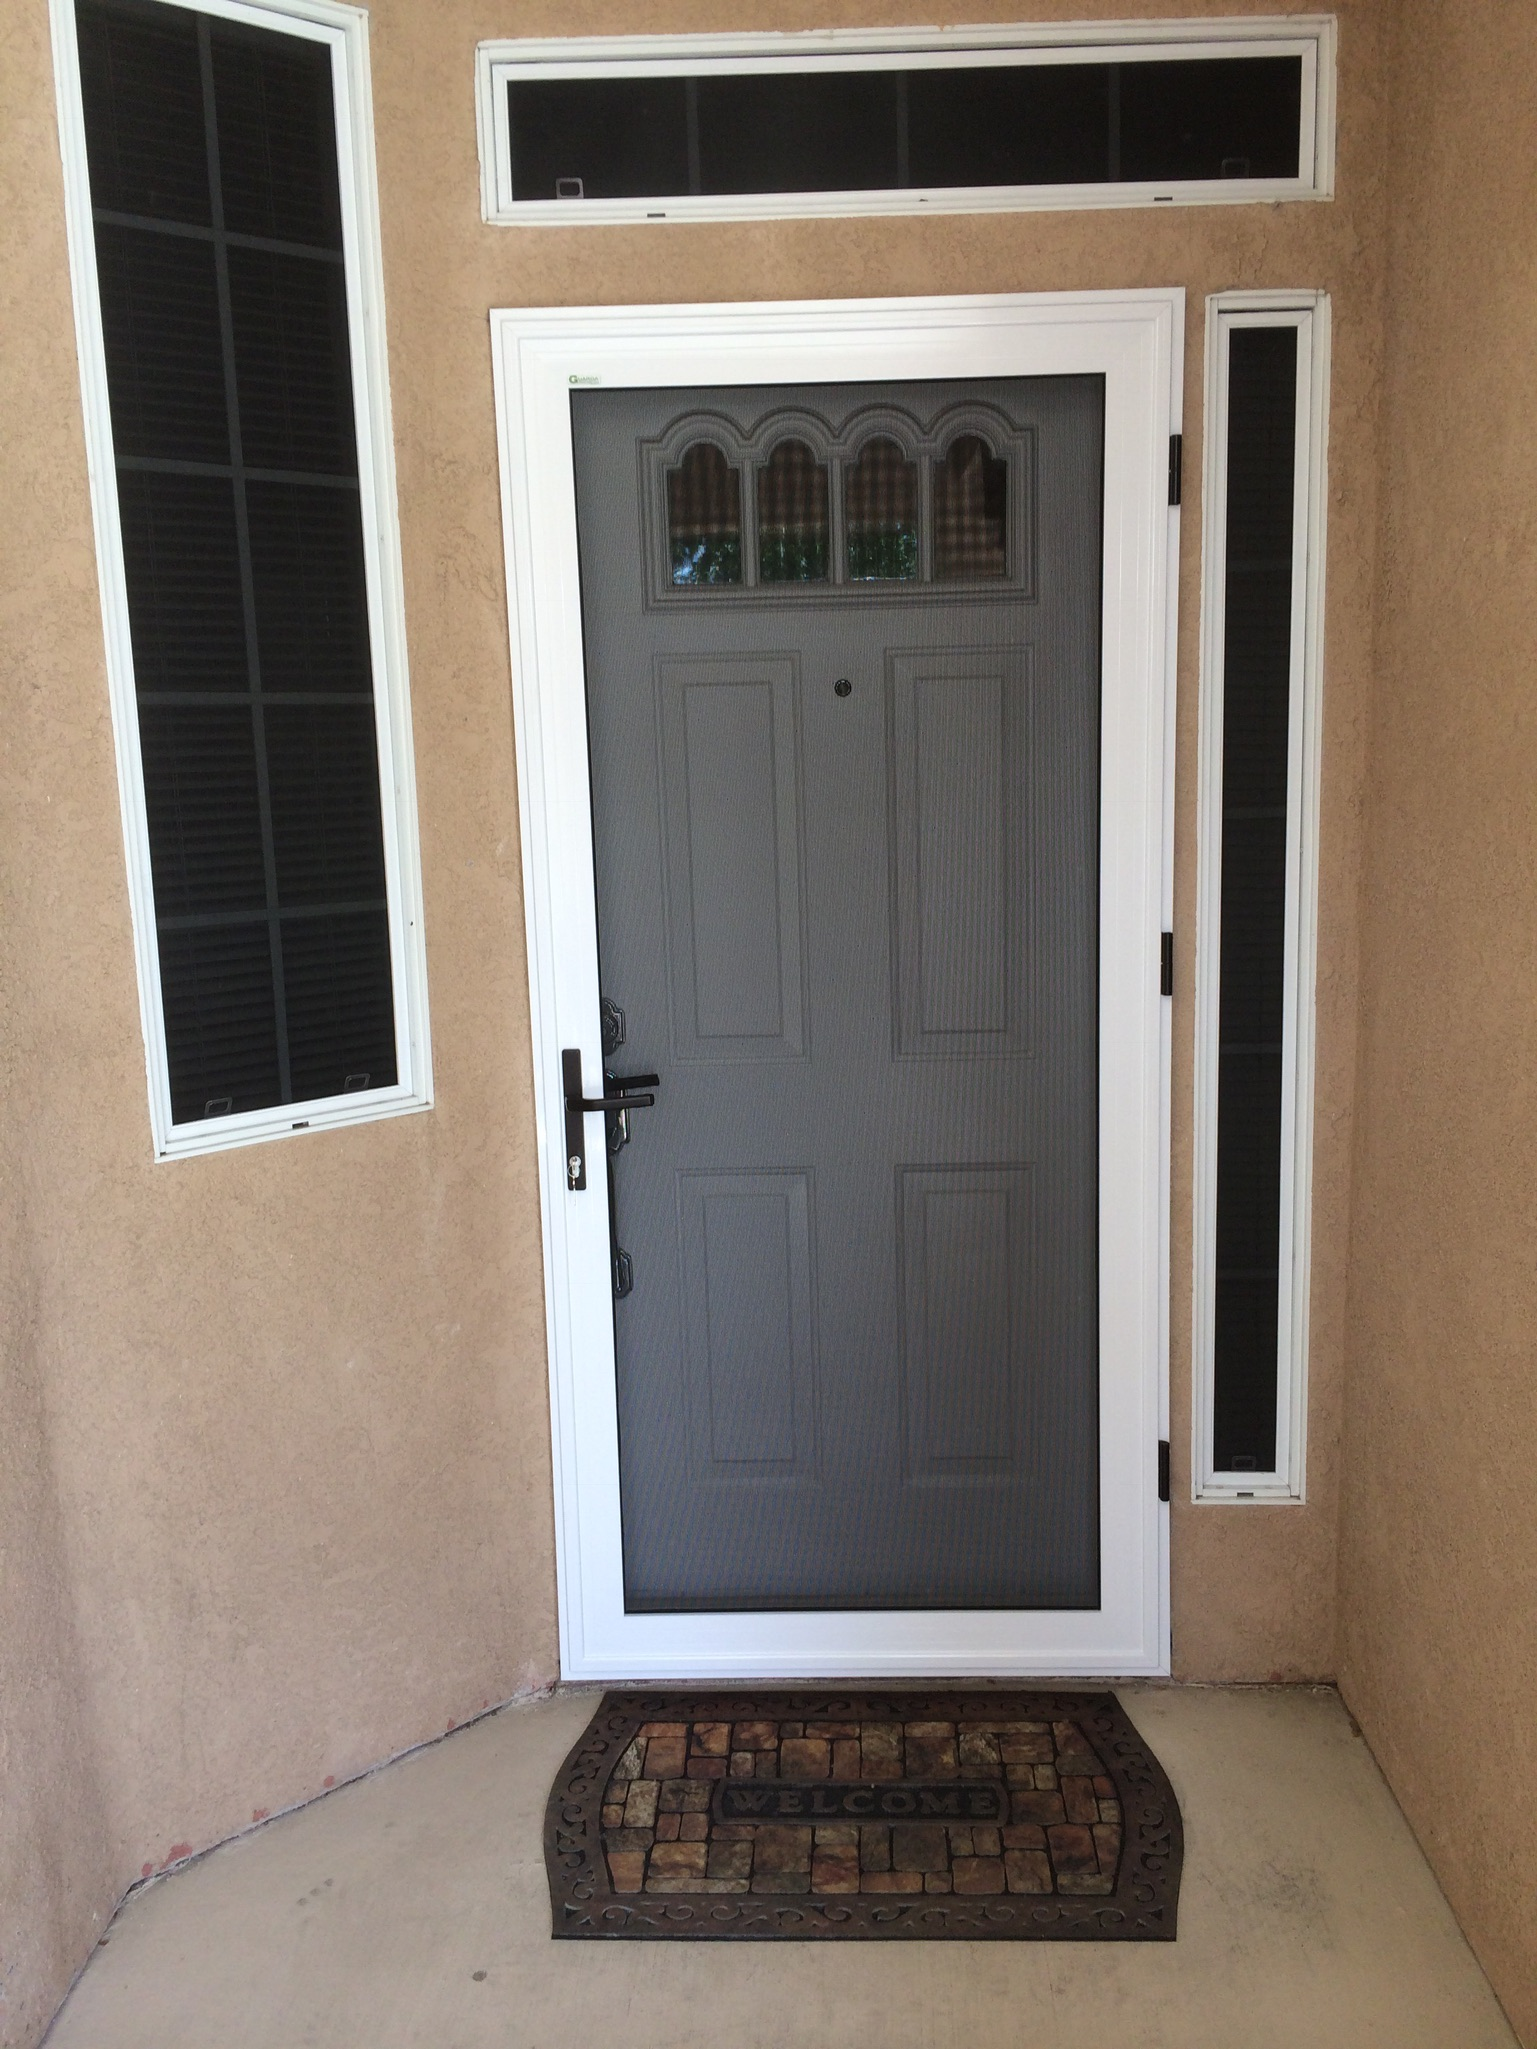 White guarda premium security door installed in the club menifee mobile screen shop - White security screen door ...